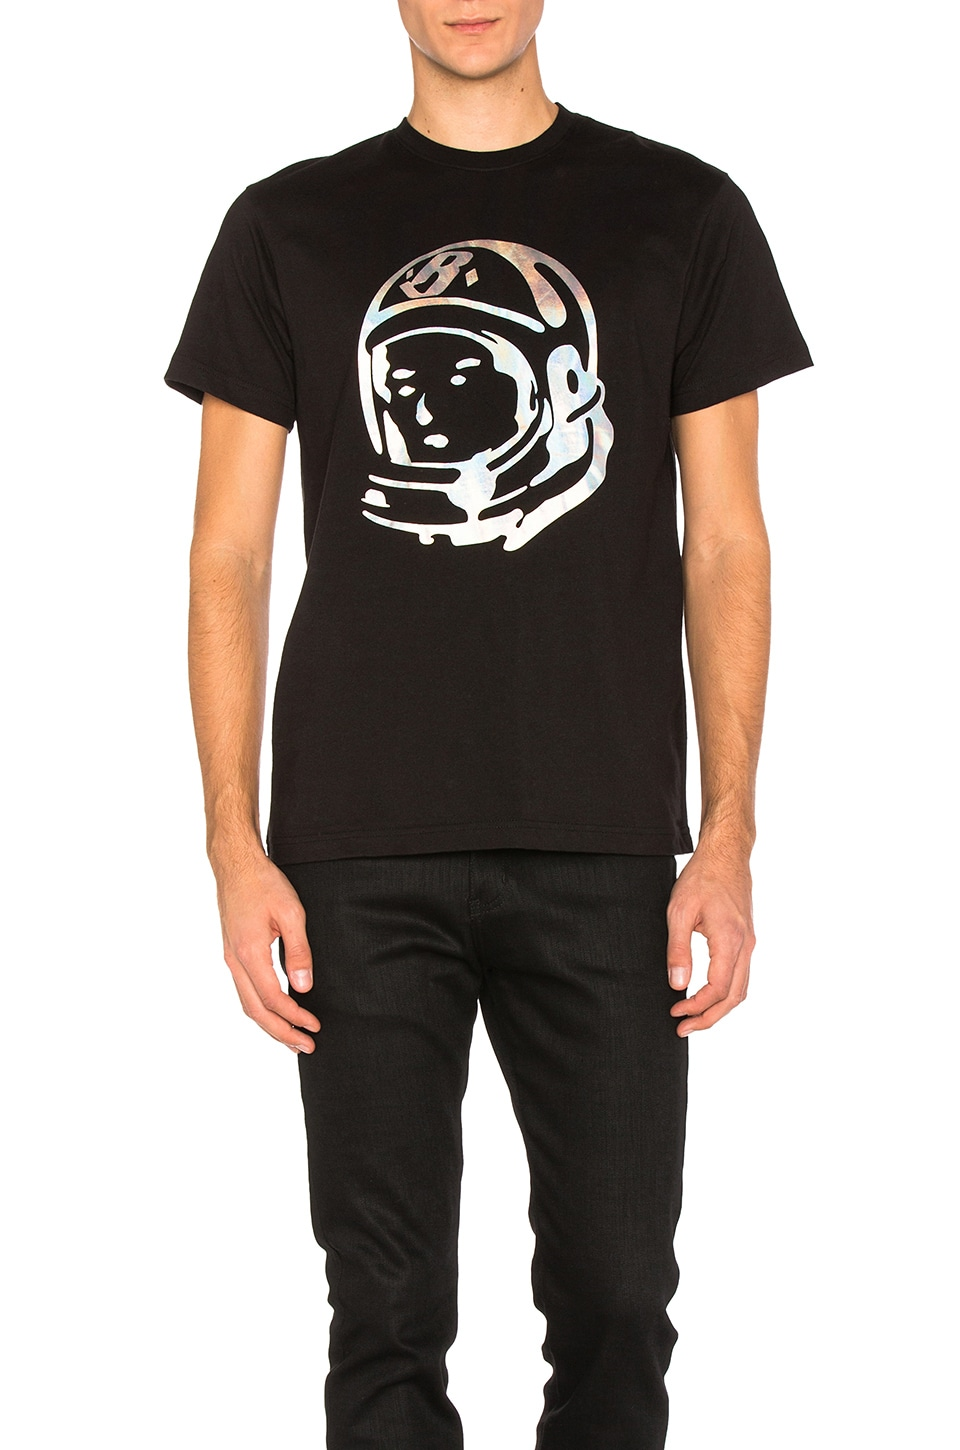 IRI Helmet Tee by Billionaire Boys Club